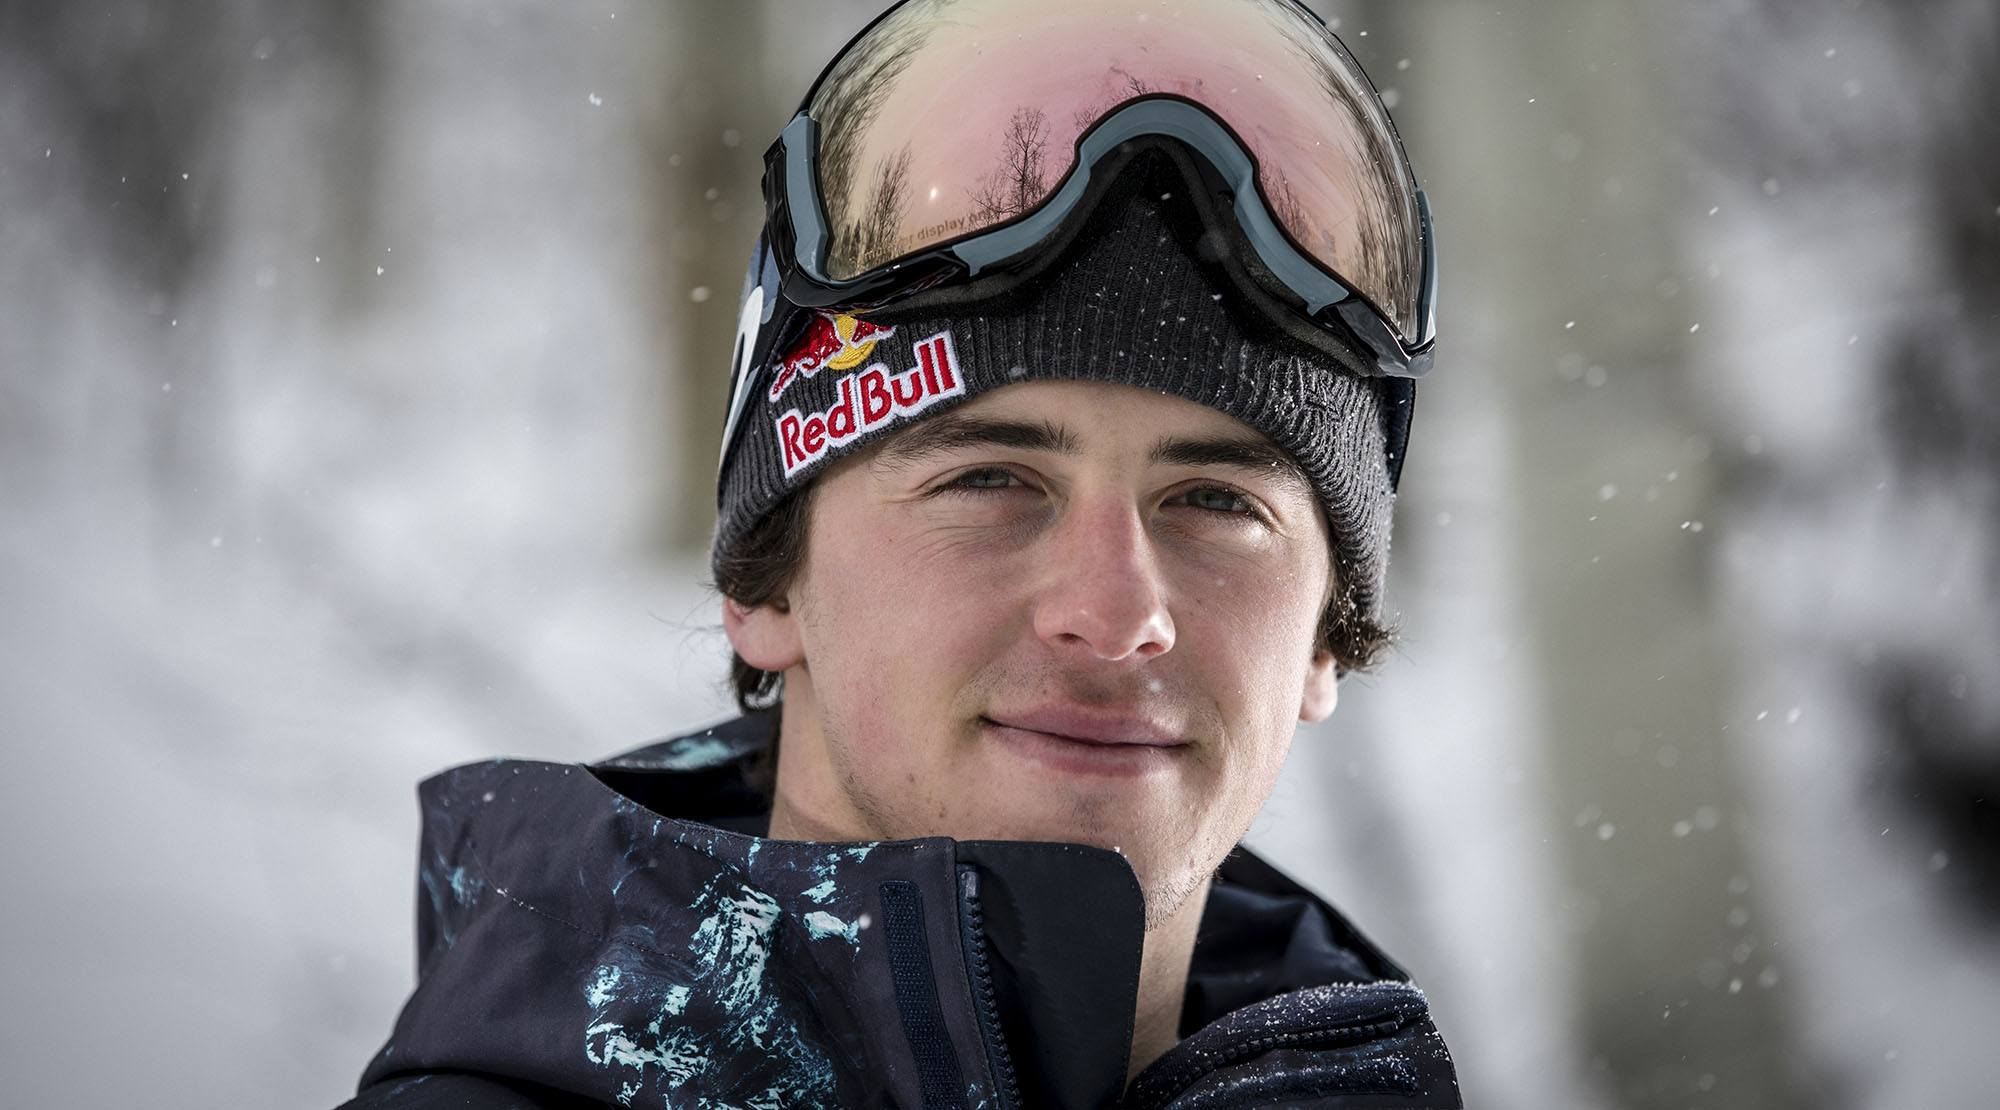 Olympic snowboarder Mark McMorris seriously injured in Whistler backcountry